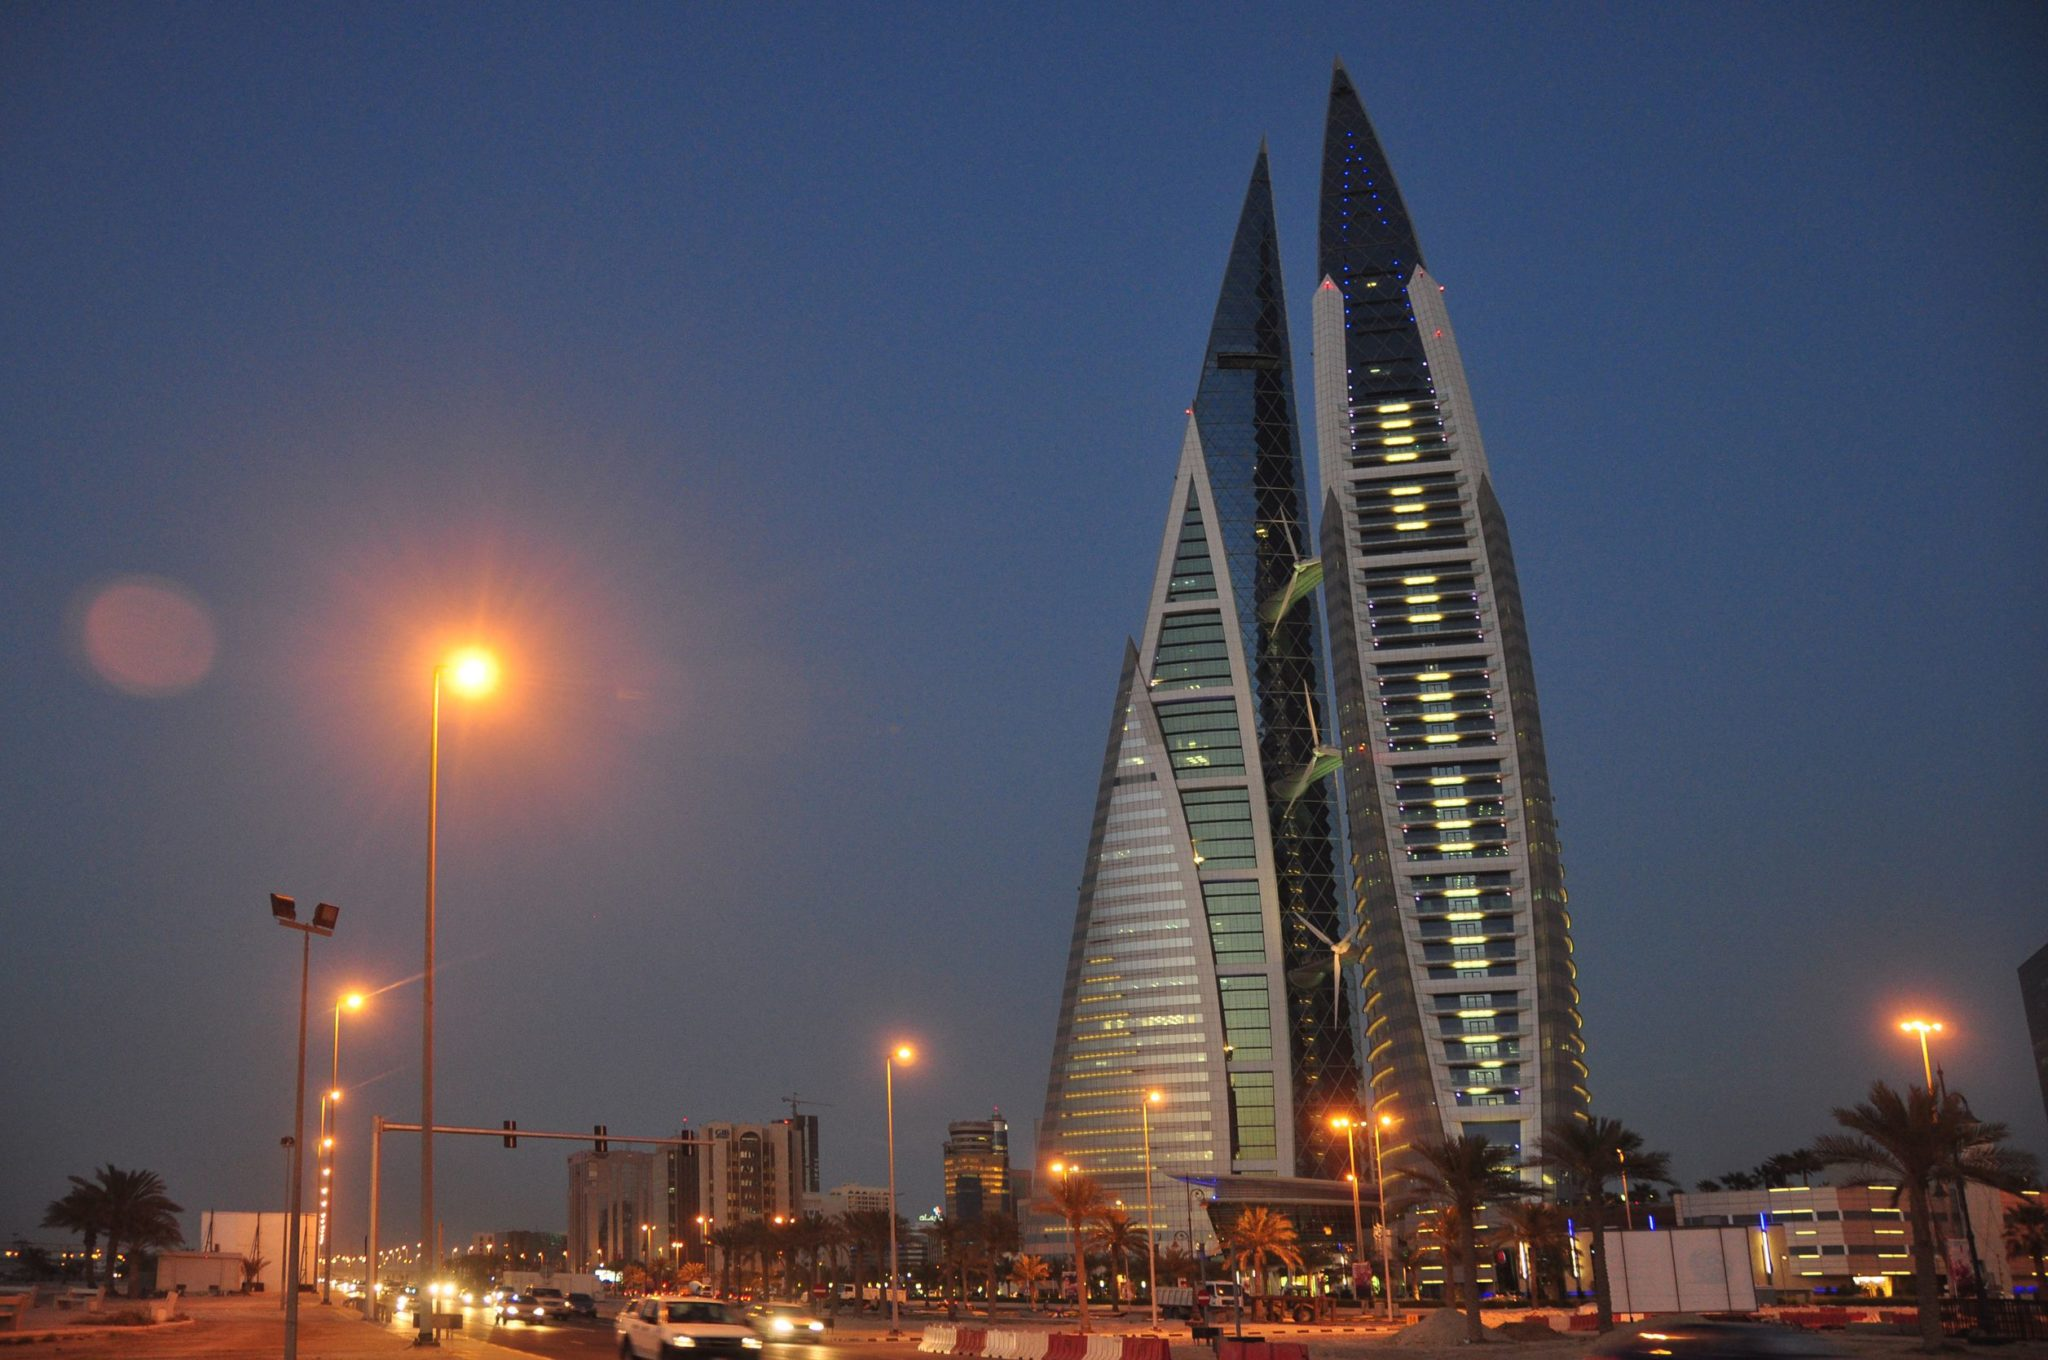 Bahrain World Trade Center in Manama